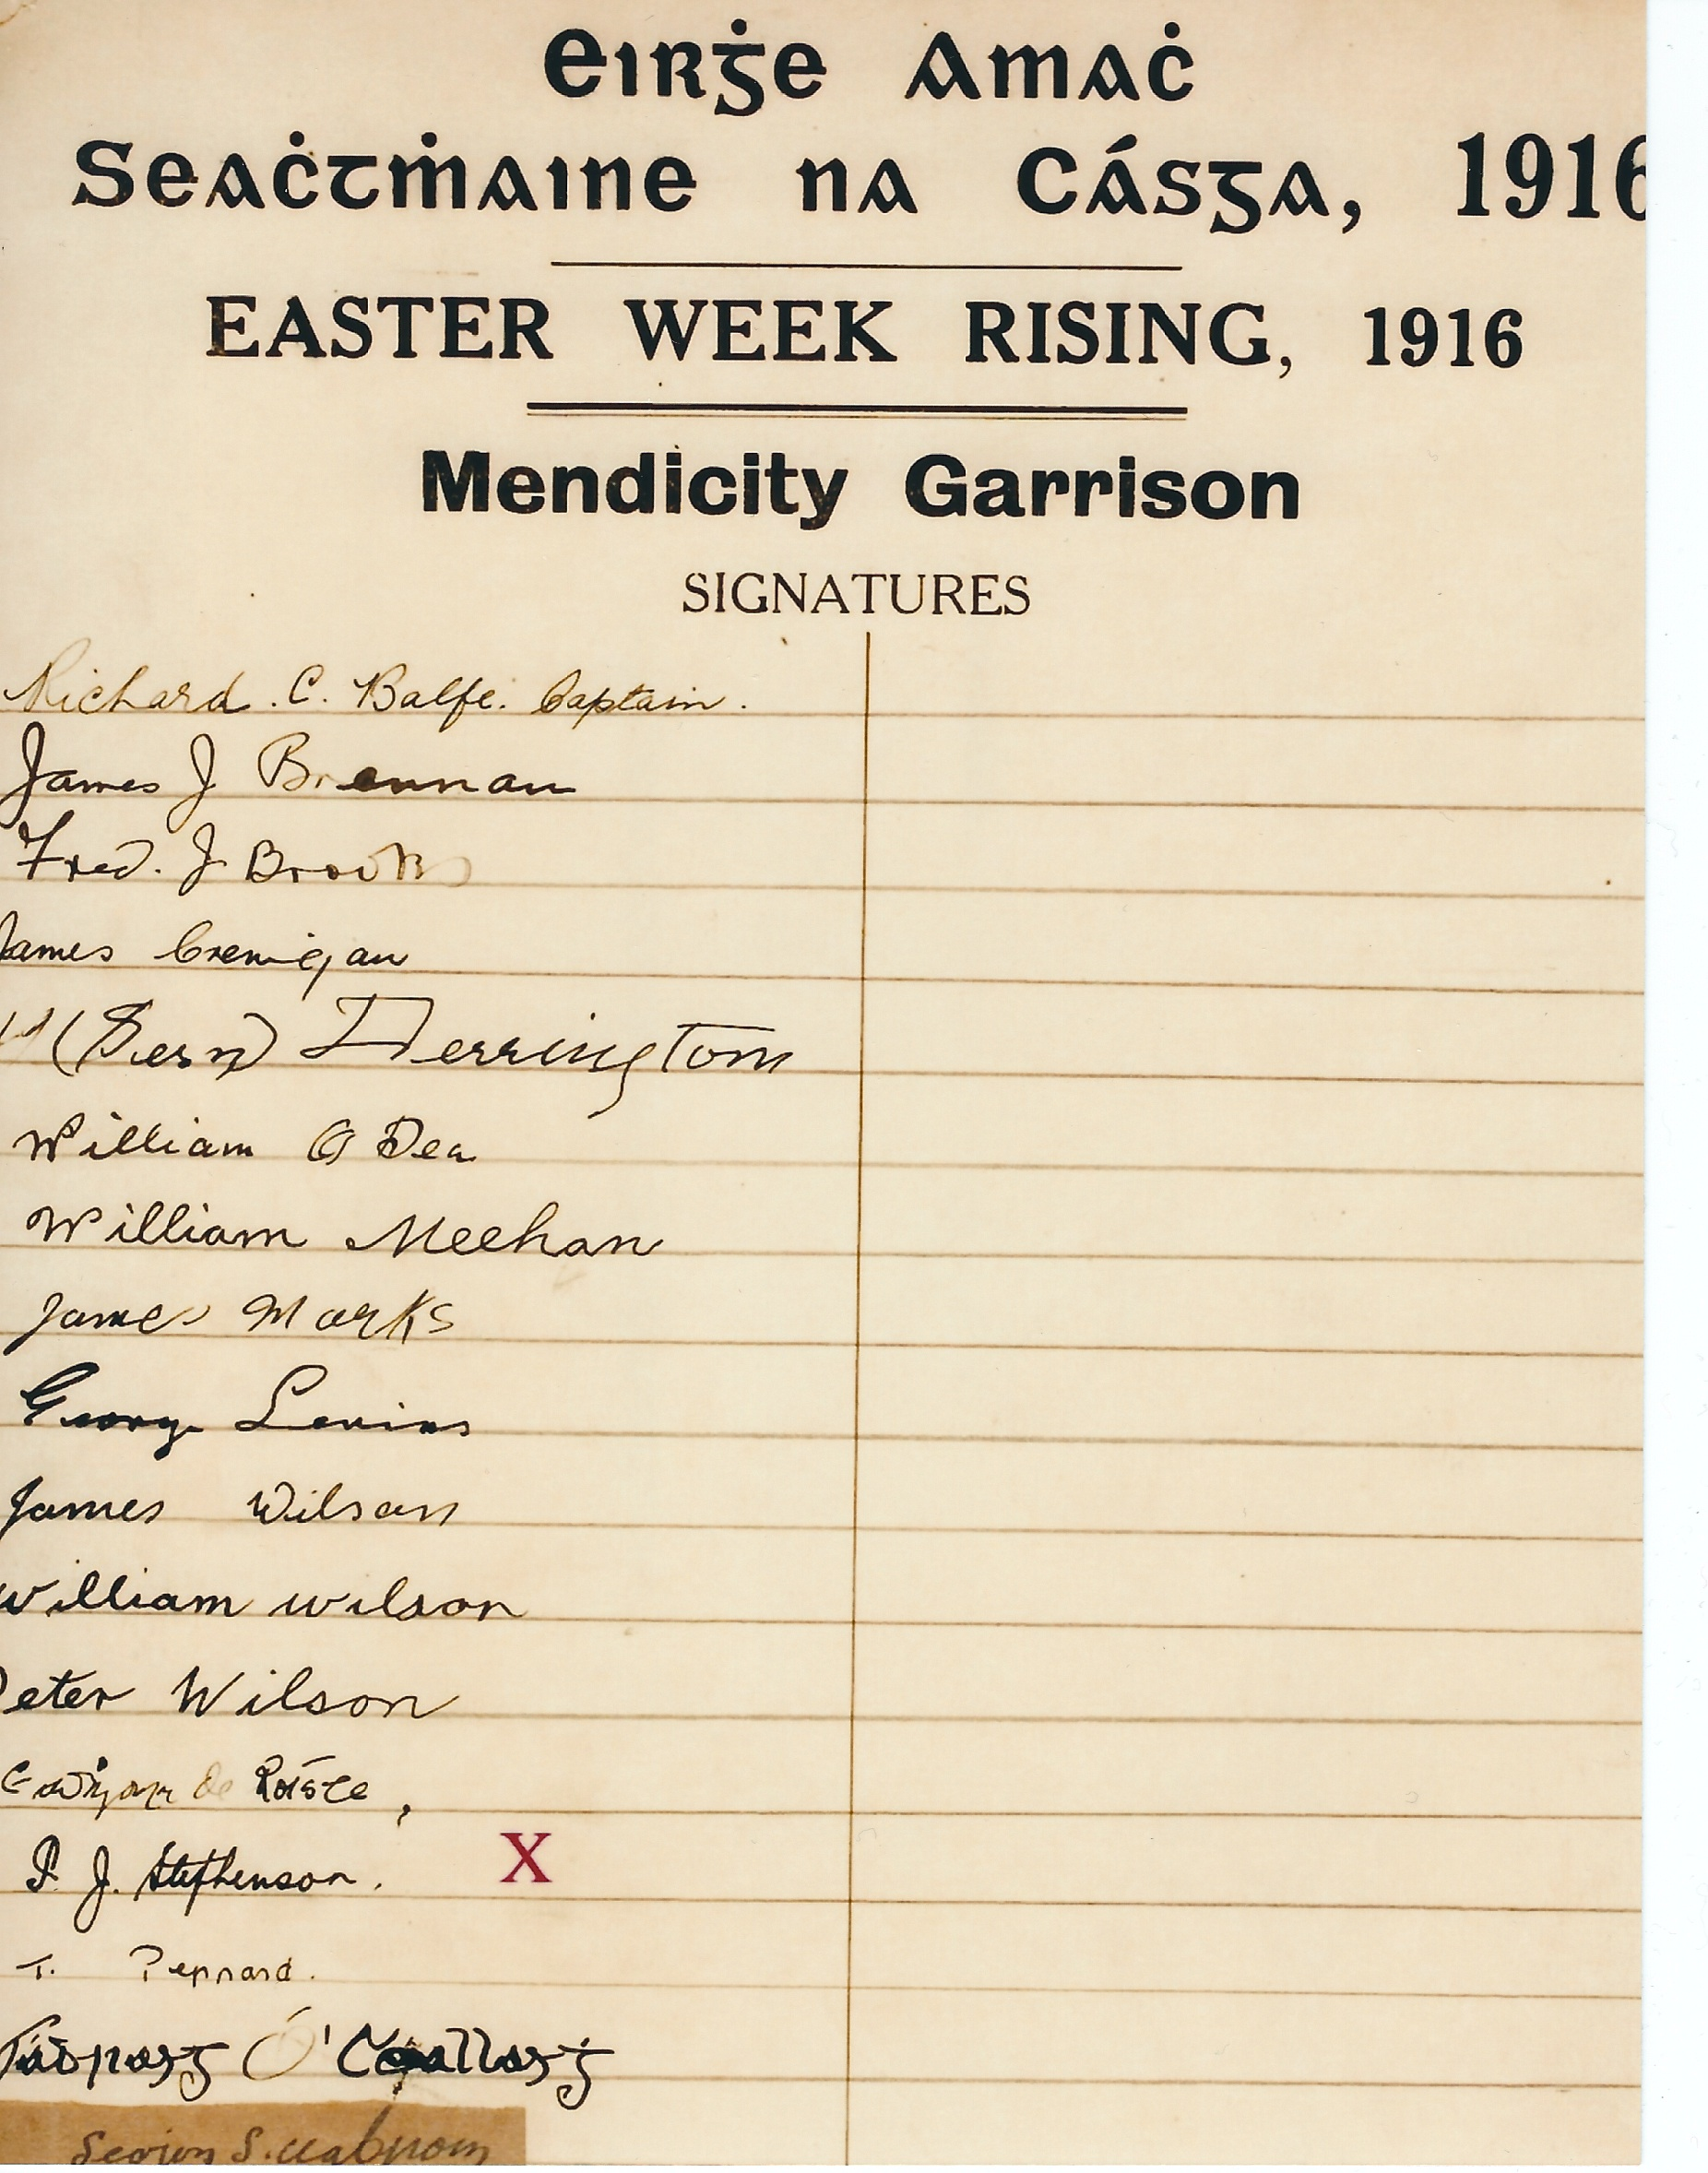 Signatures of the Mendicity garrison. Paddy Joe's is marked with an X.